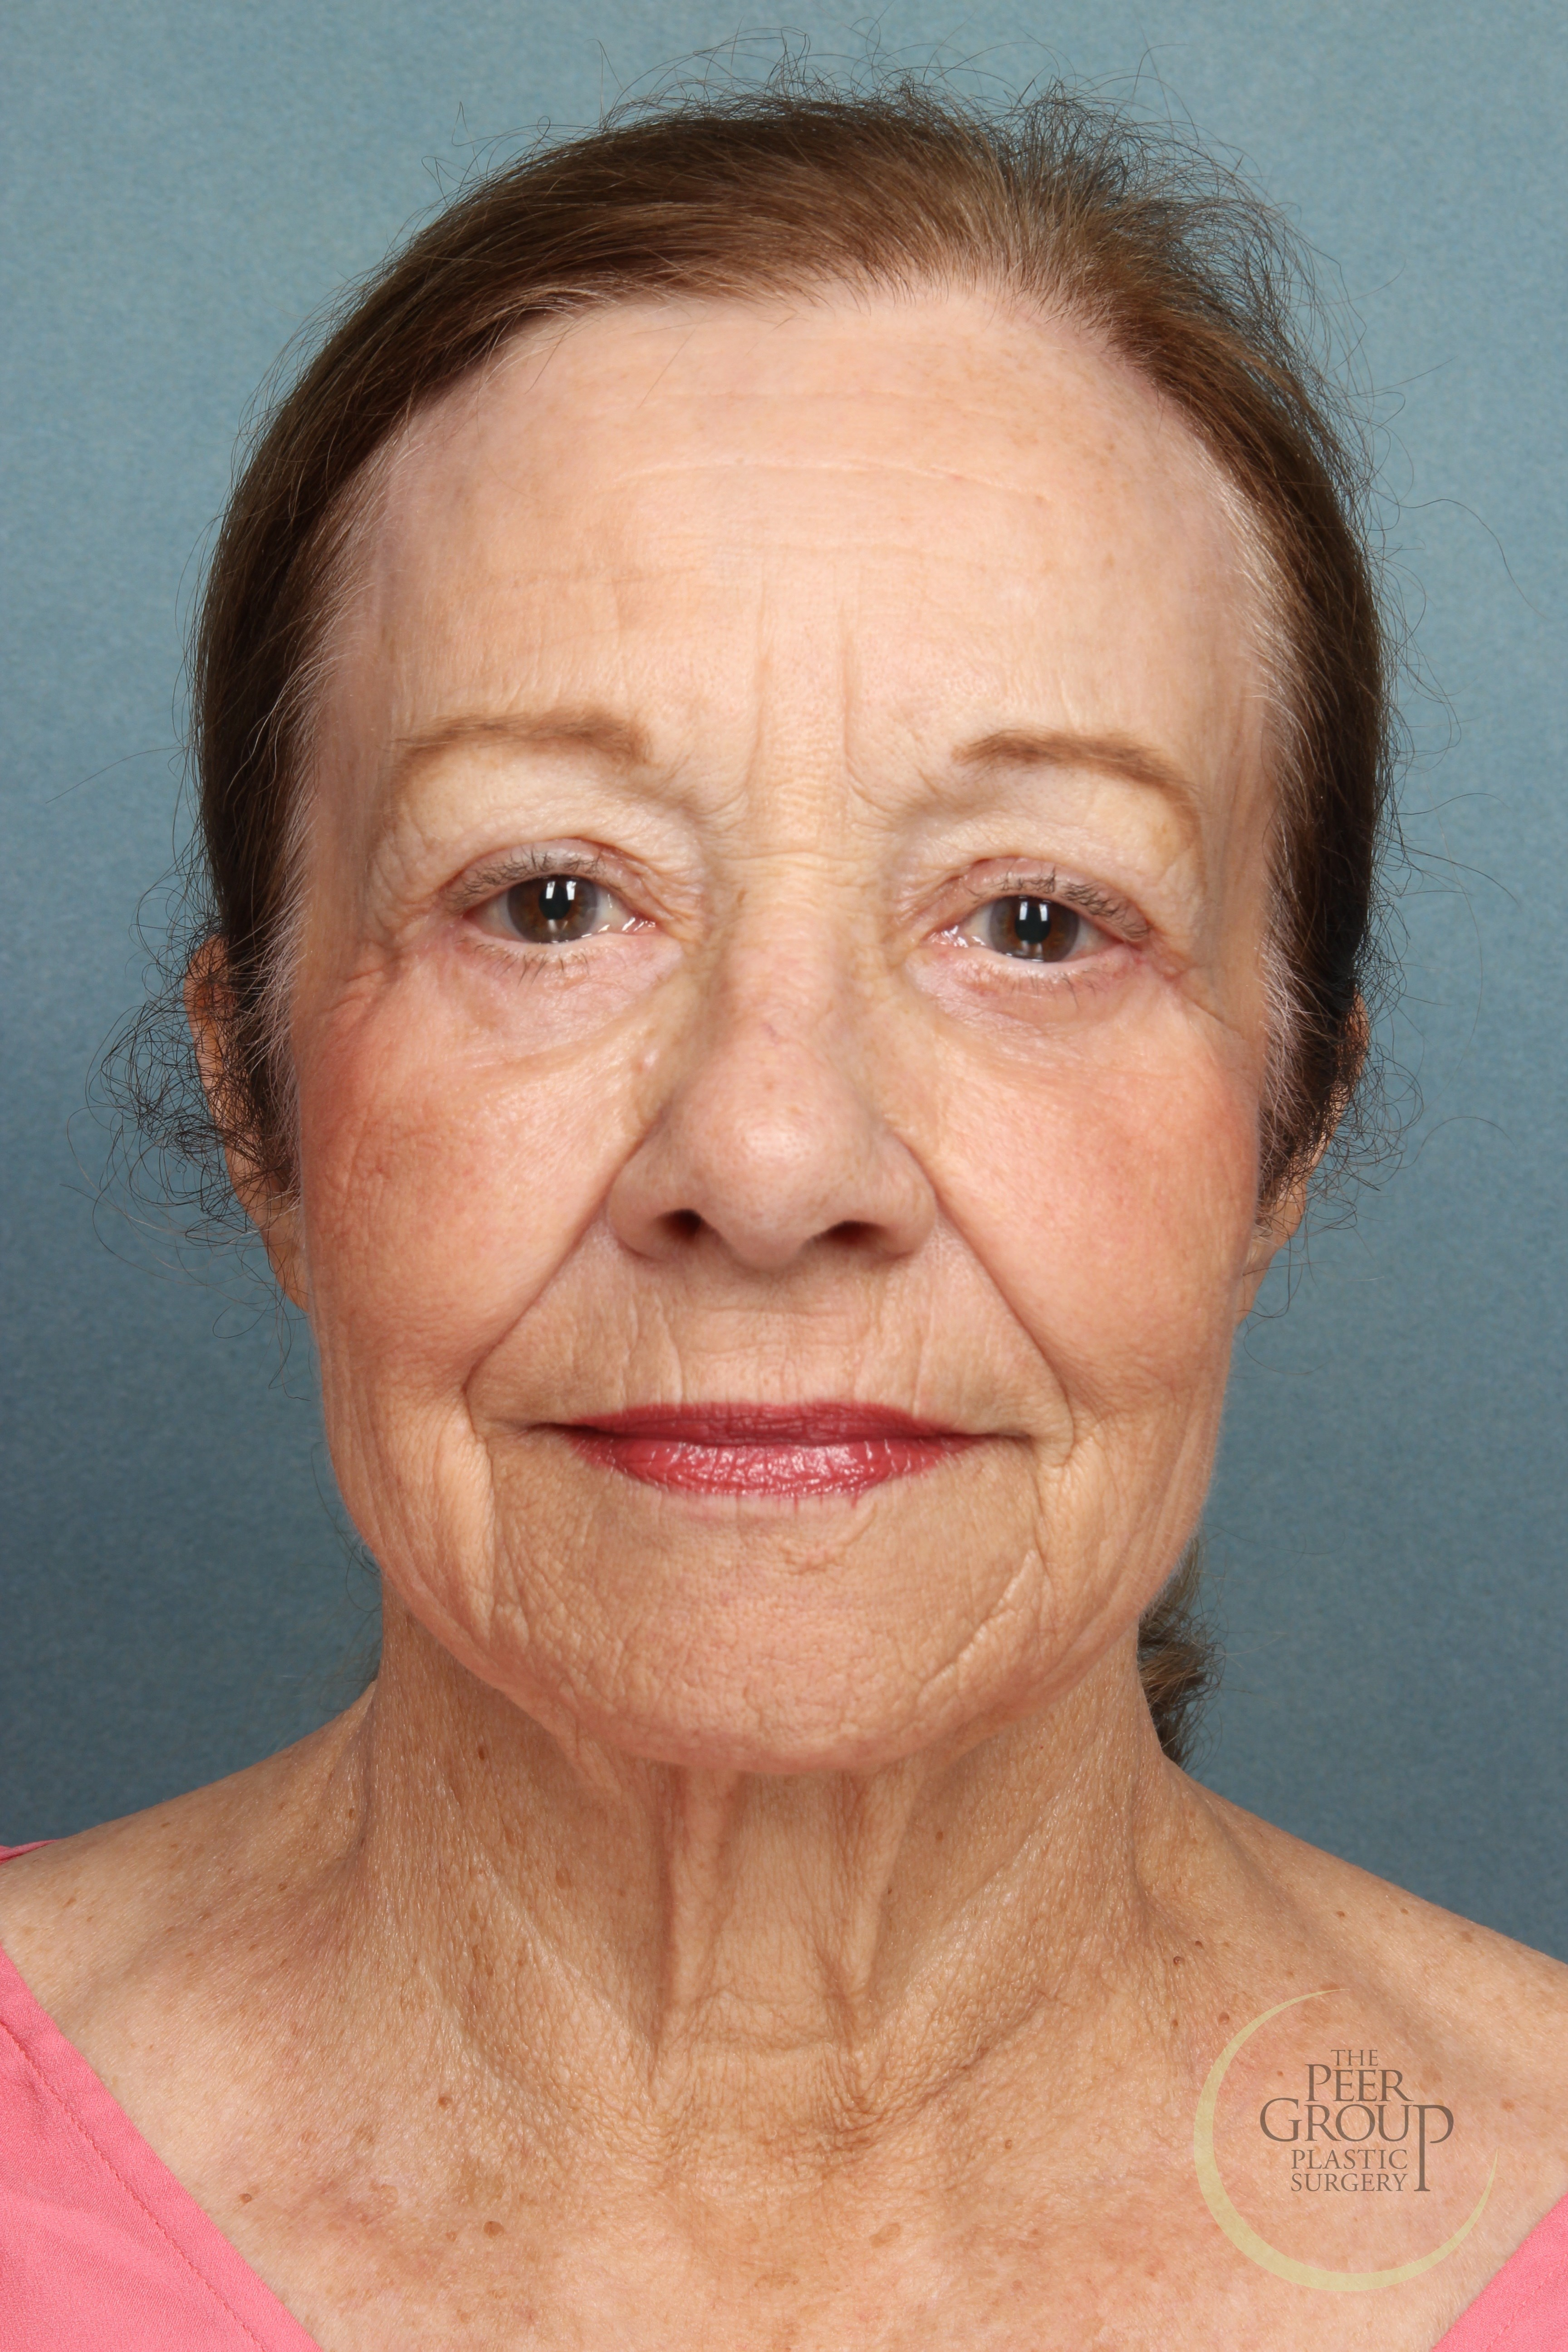 Facial Rejuvenation New Jersey After